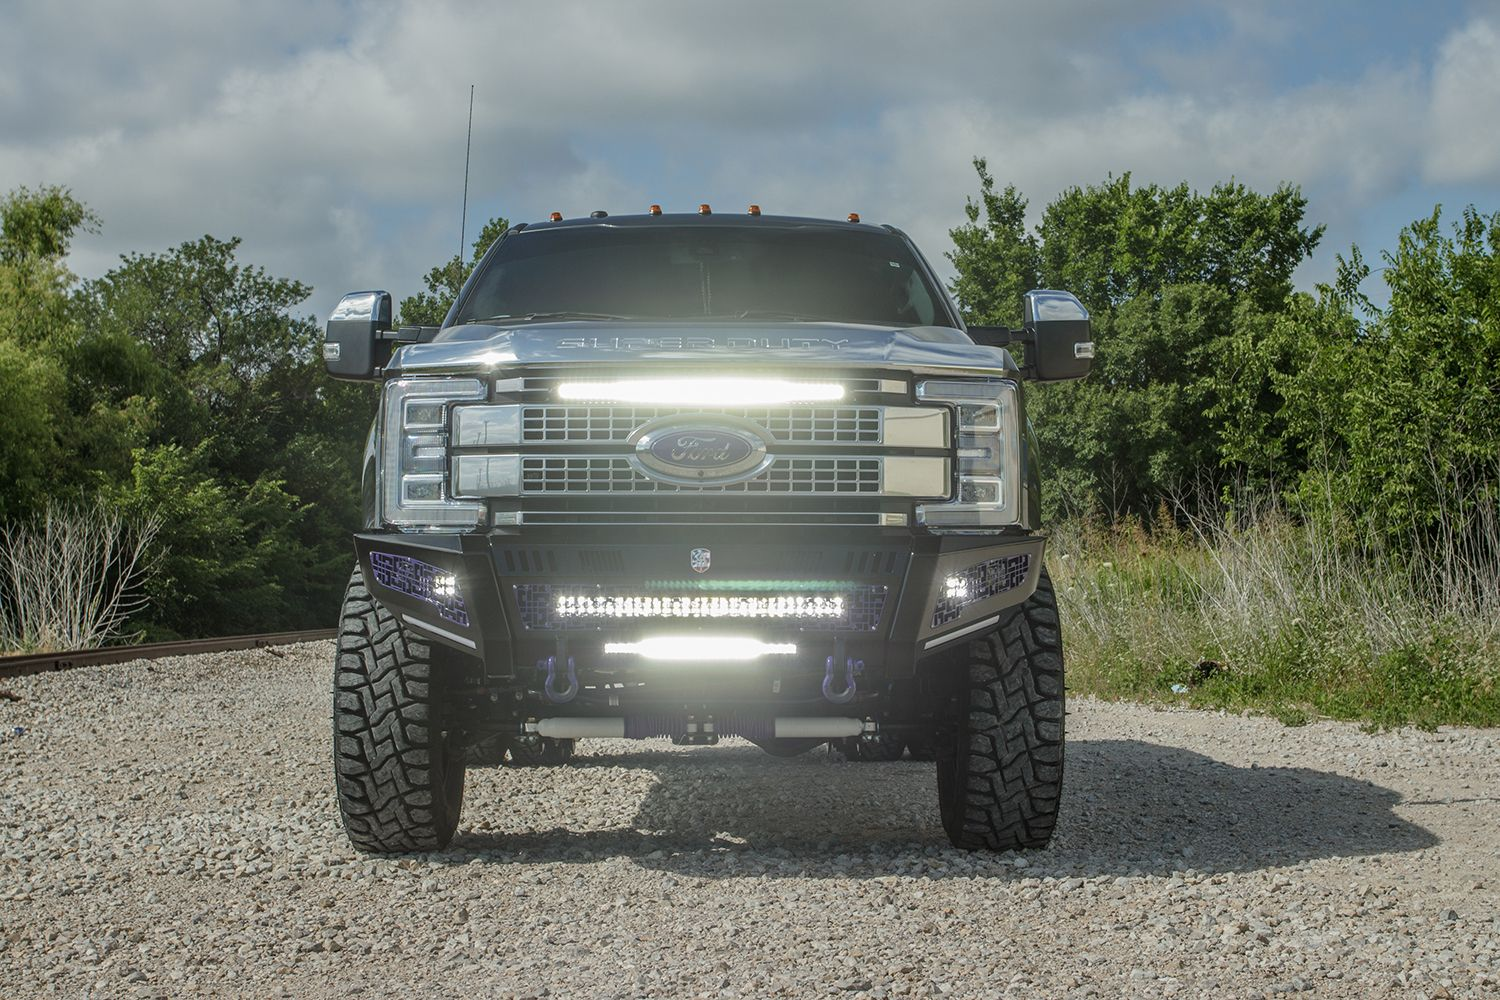 hight resolution of road armor identity bumpers on a lifted gray ford f350 dually with custom rigid led light bars